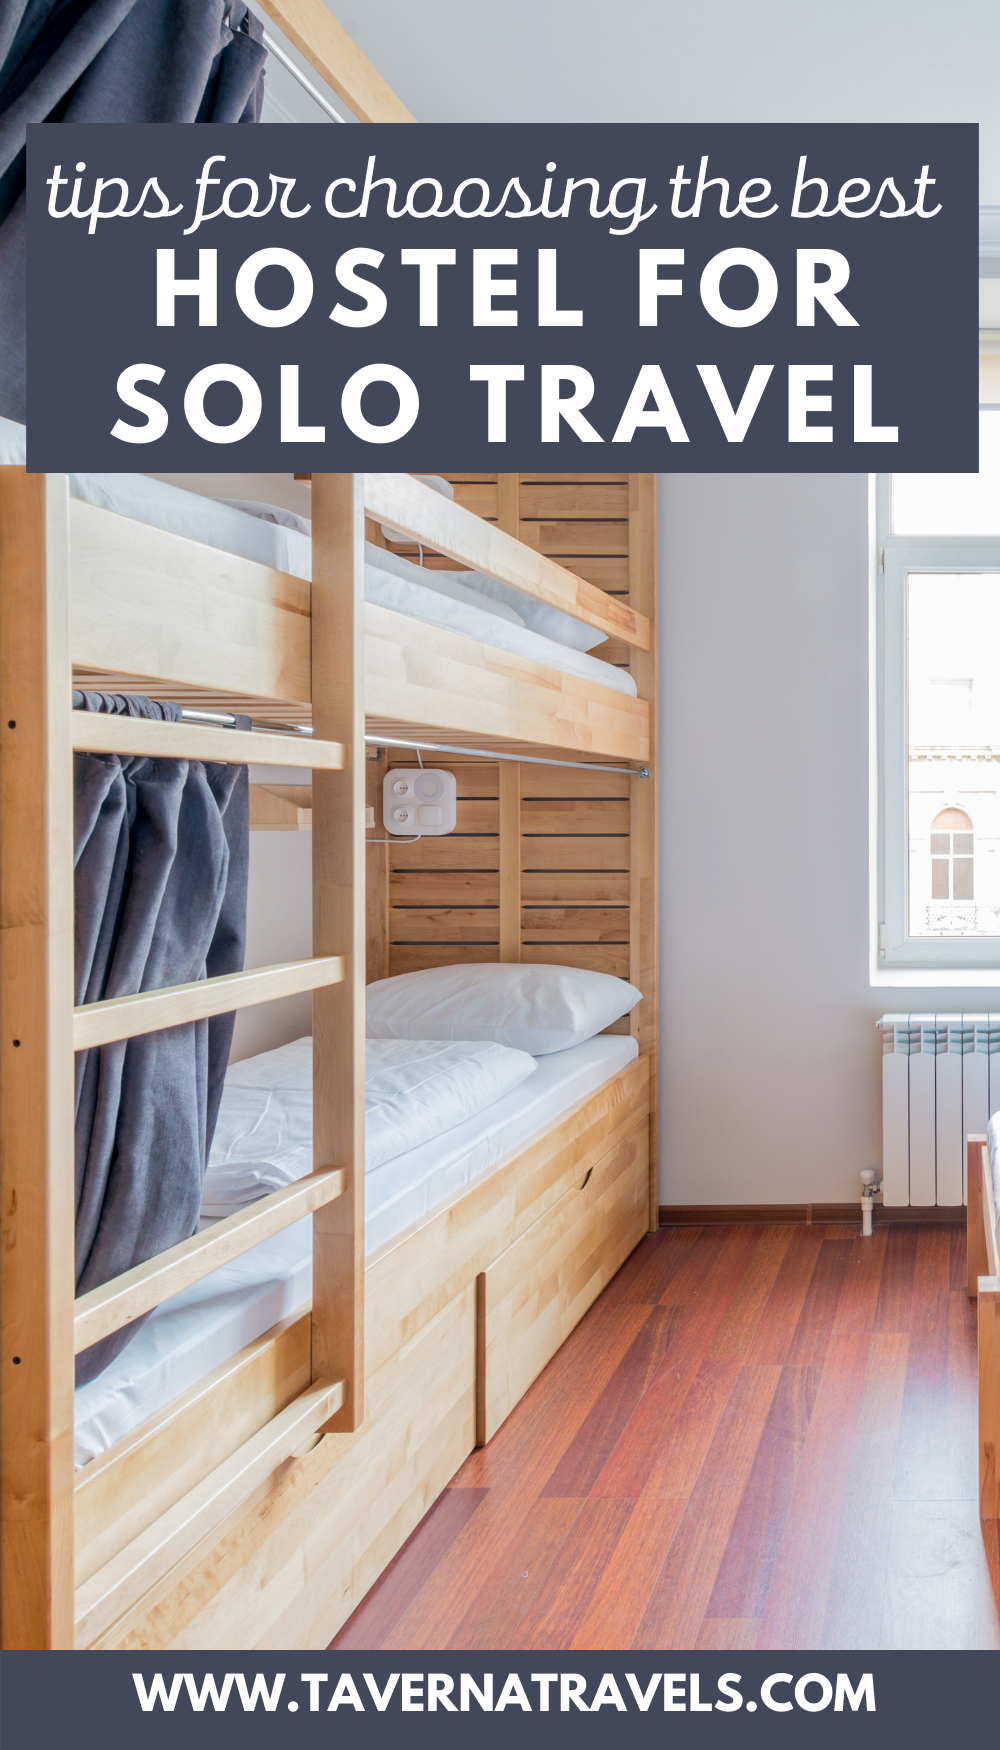 Tips on Choosing the Best Hostel for Solo Travel pin